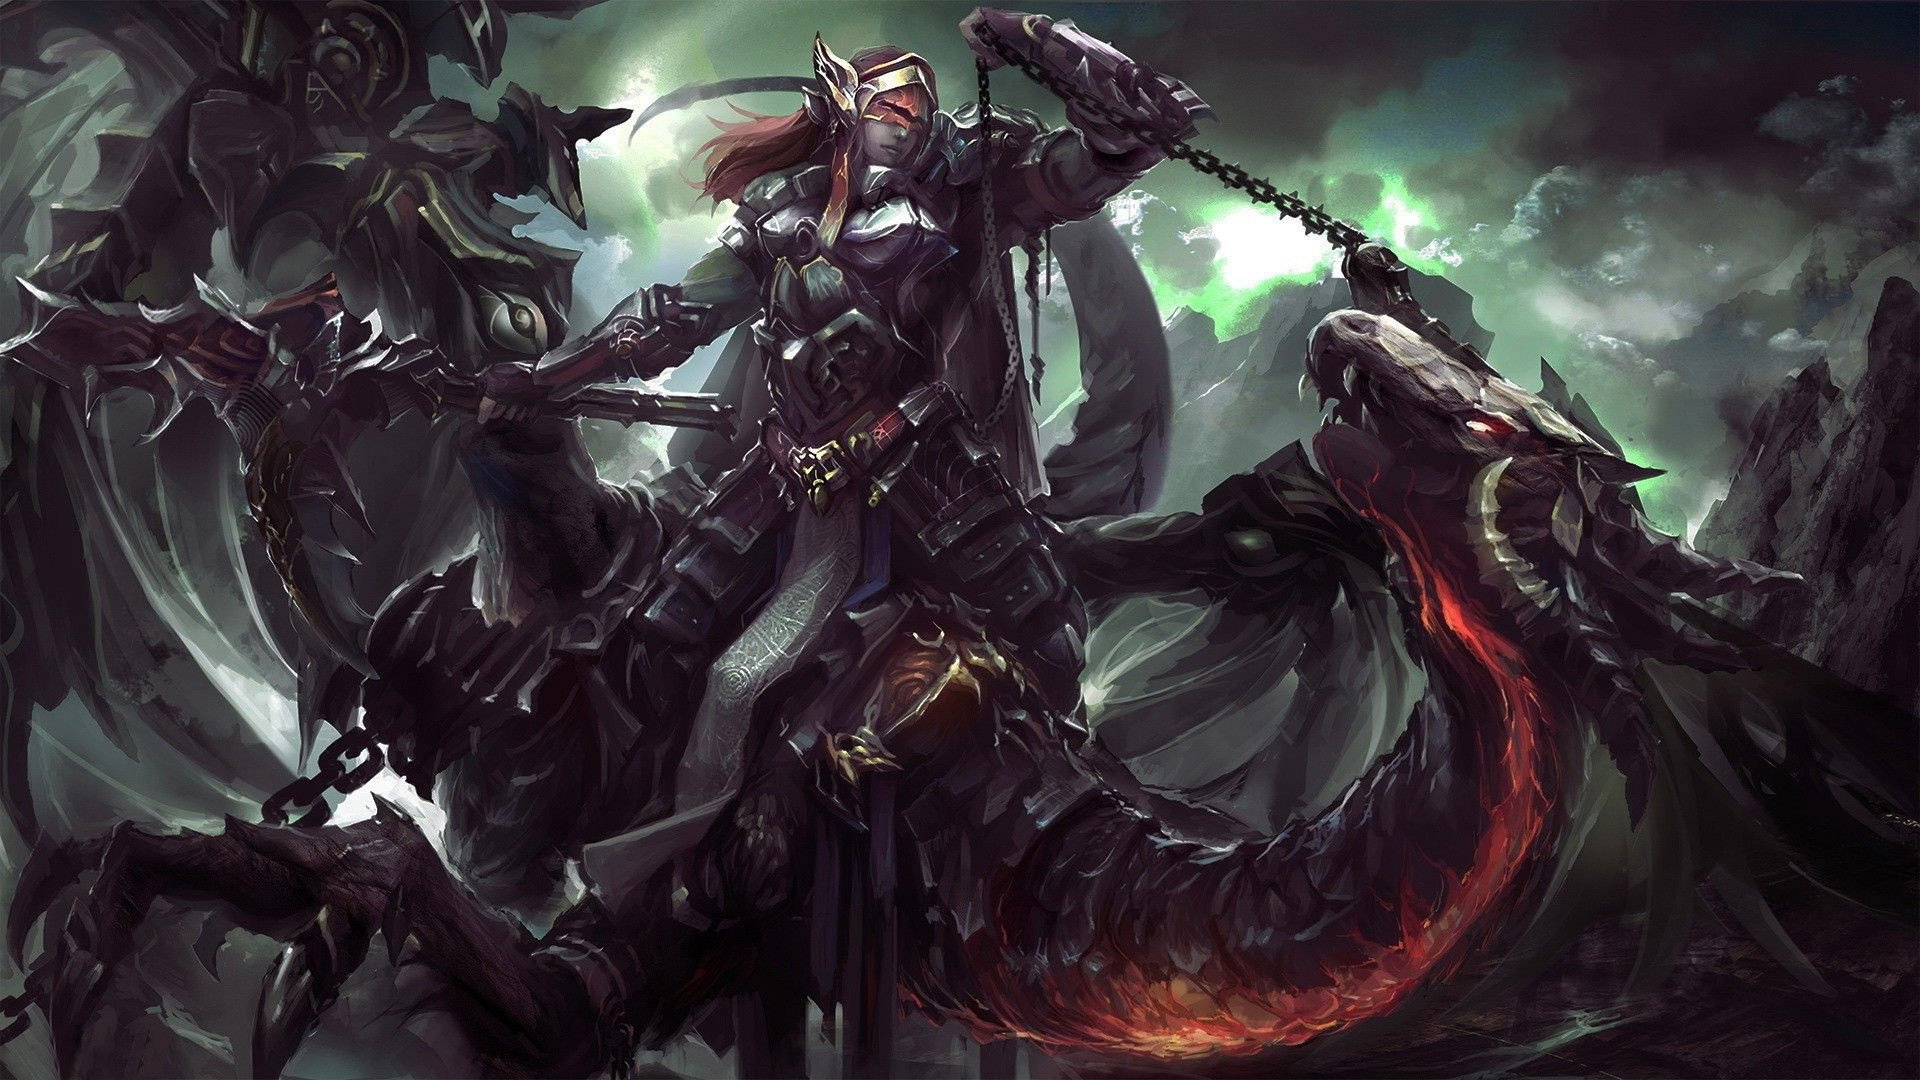 Dragon Nest Movie Wallpaper  Desktop Wallpaper  Pinterest 1920x1080